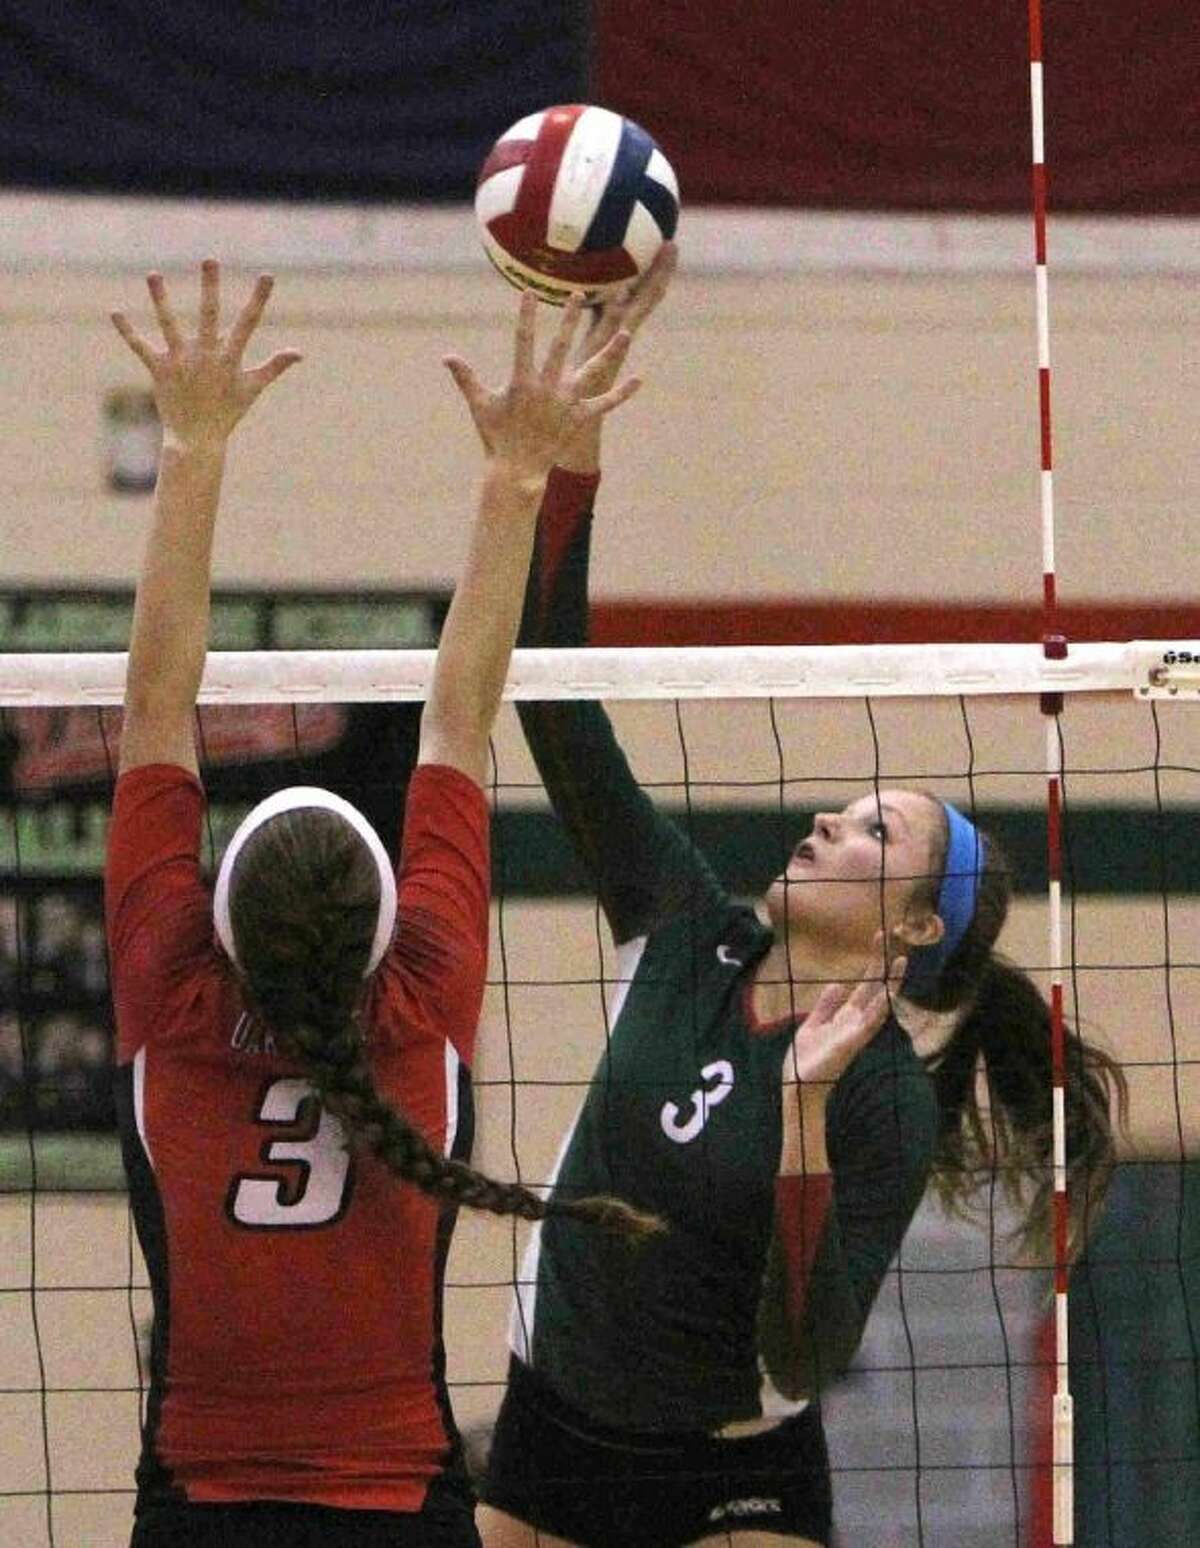 The Woodlands' Madison McDaniel spikes the ball as Oak Ridge's Jaclyn Ward goes up for a block during a match on Tuesday at The Woodlands High School. To view or purchase this photo and others like it, visit HCNpics.com.